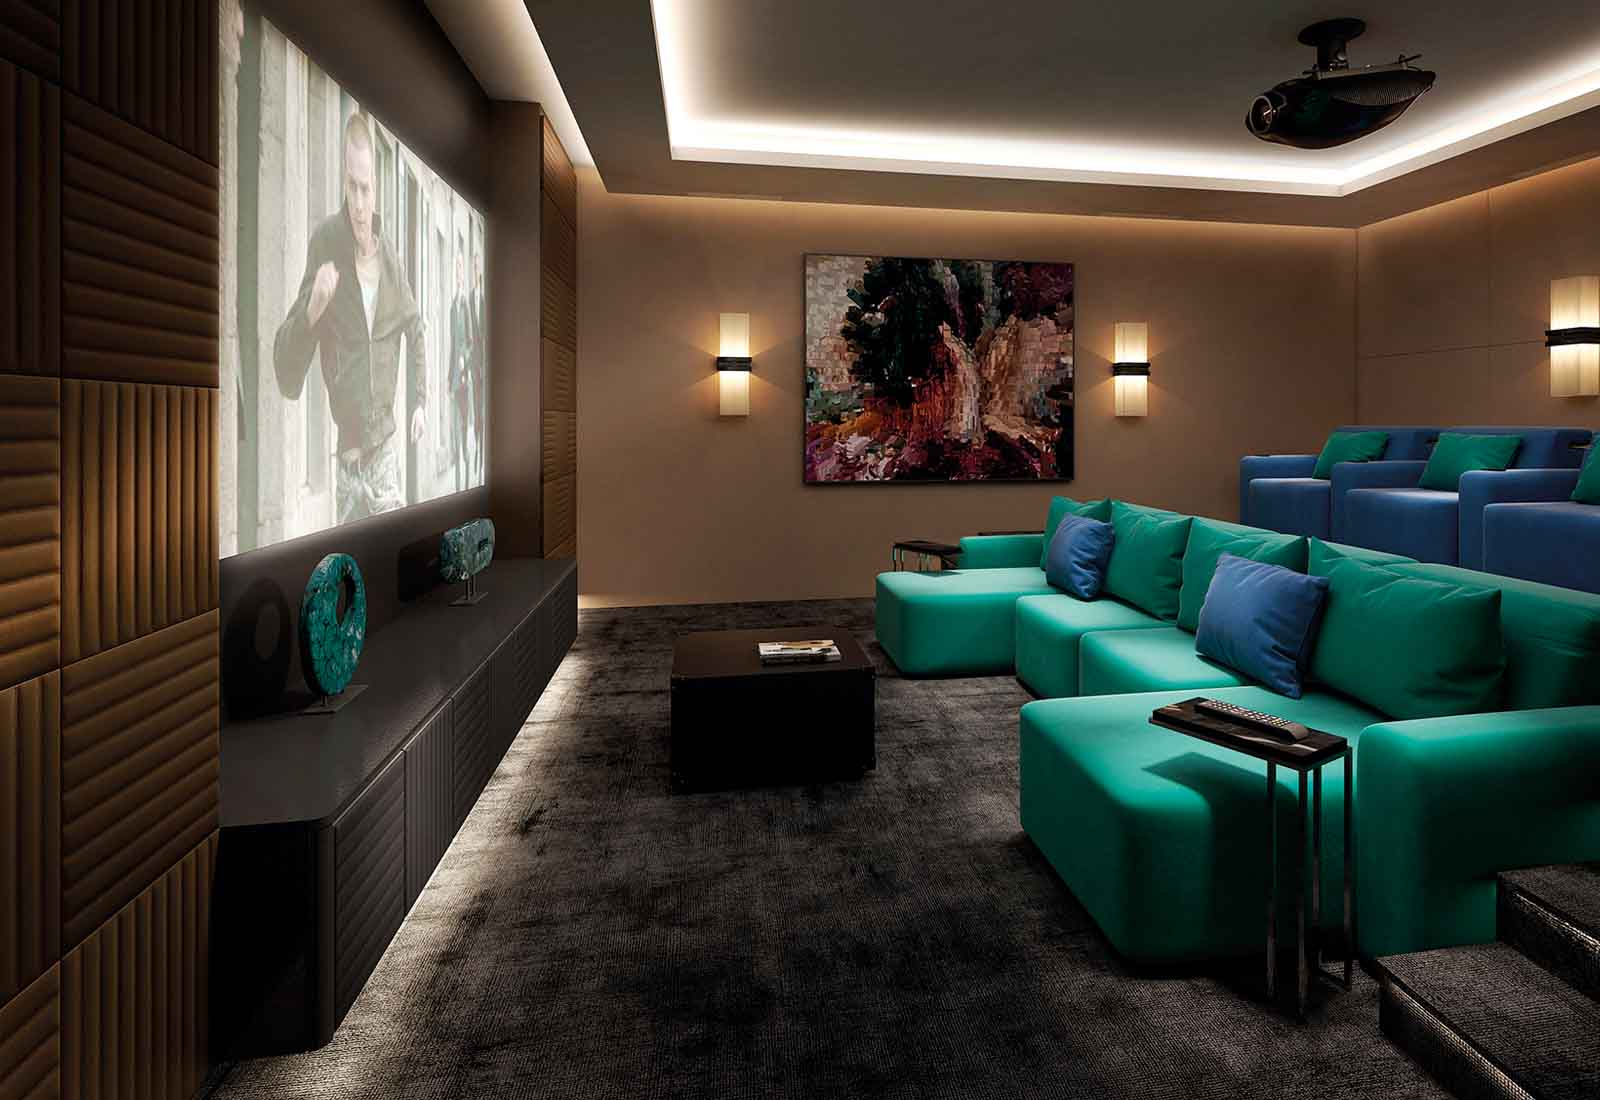 So If You Are Looking For A Unique Luxury Tv Cabinet A Luxury Tv Unit All The Way Through To The Full Media Room Furniture Cinema Room Installation With